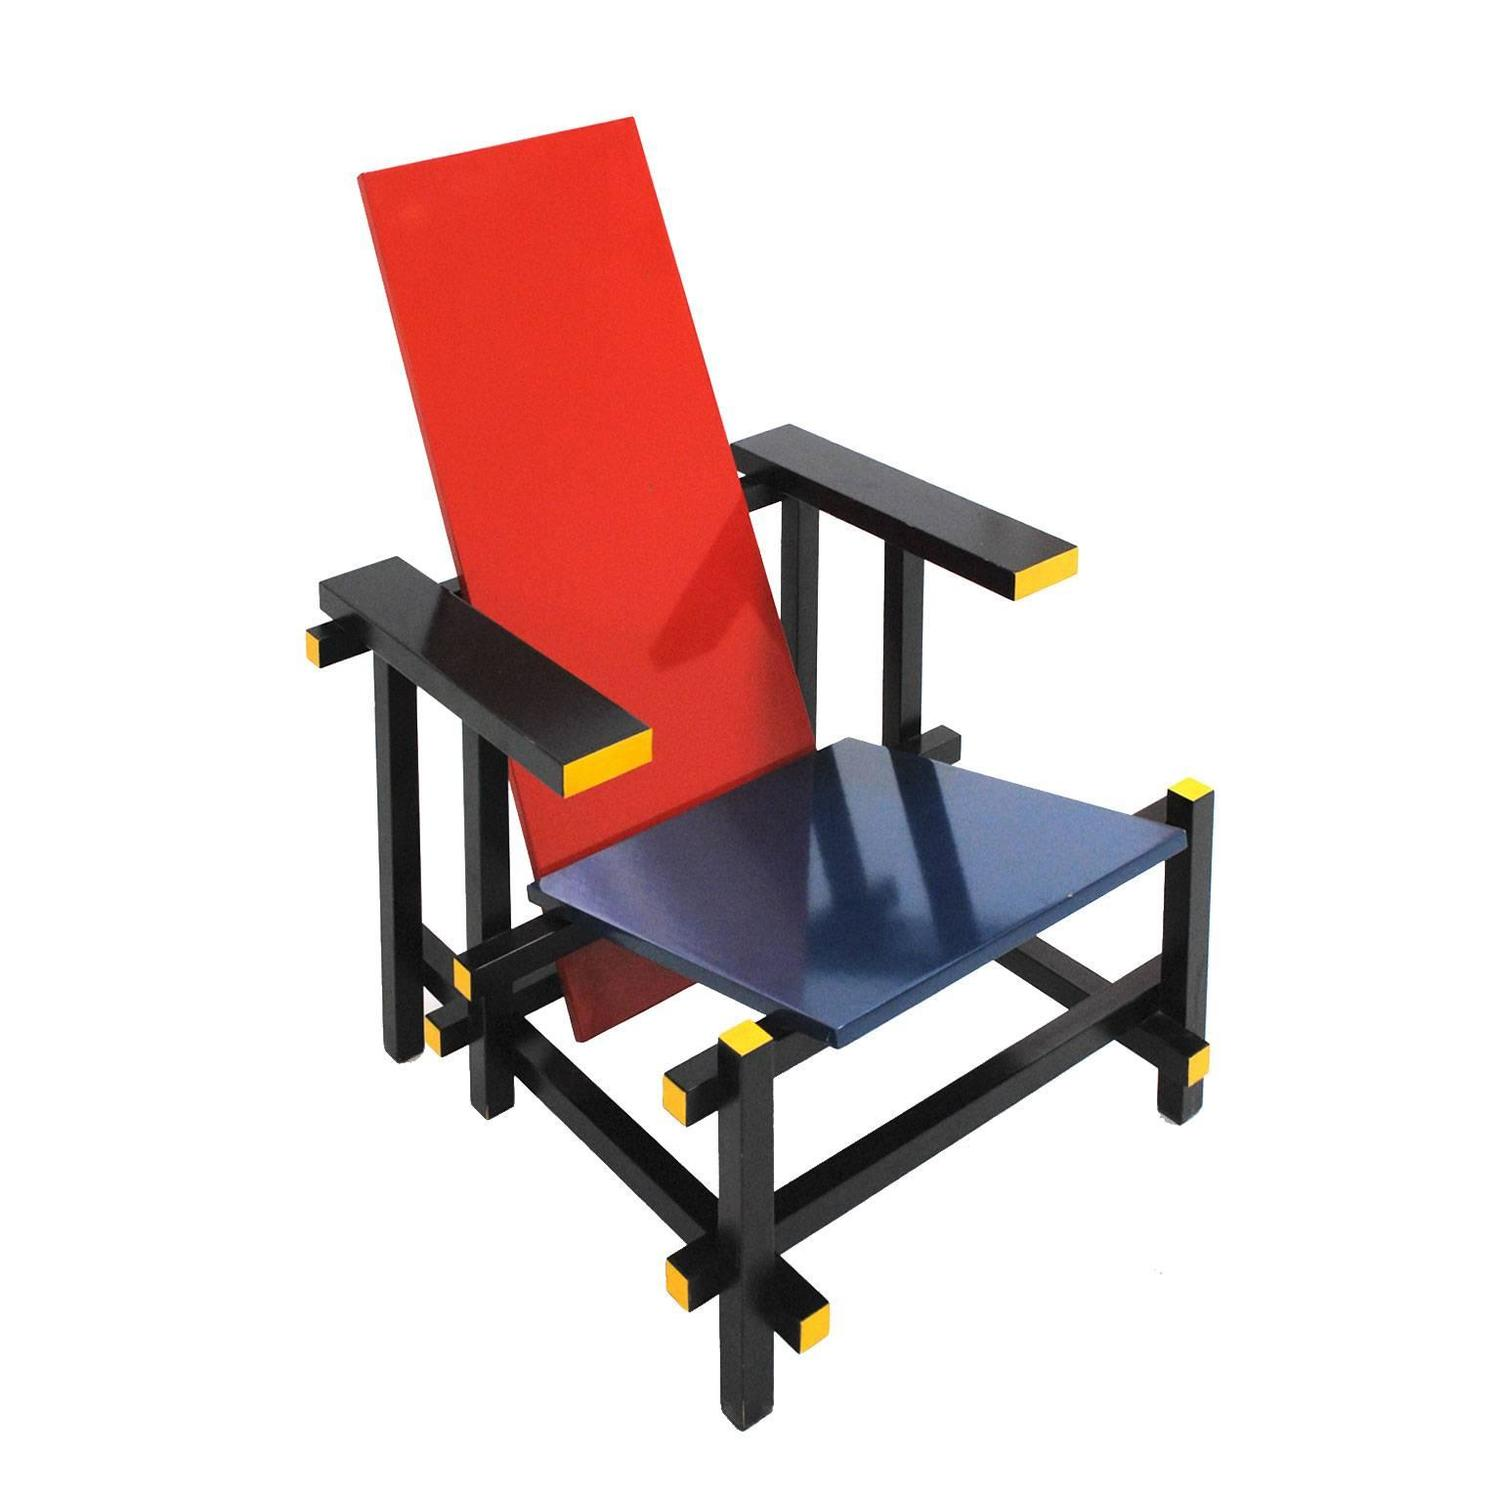 Red And Blue 365 Chair By Gerrit Thomas Rietveld For